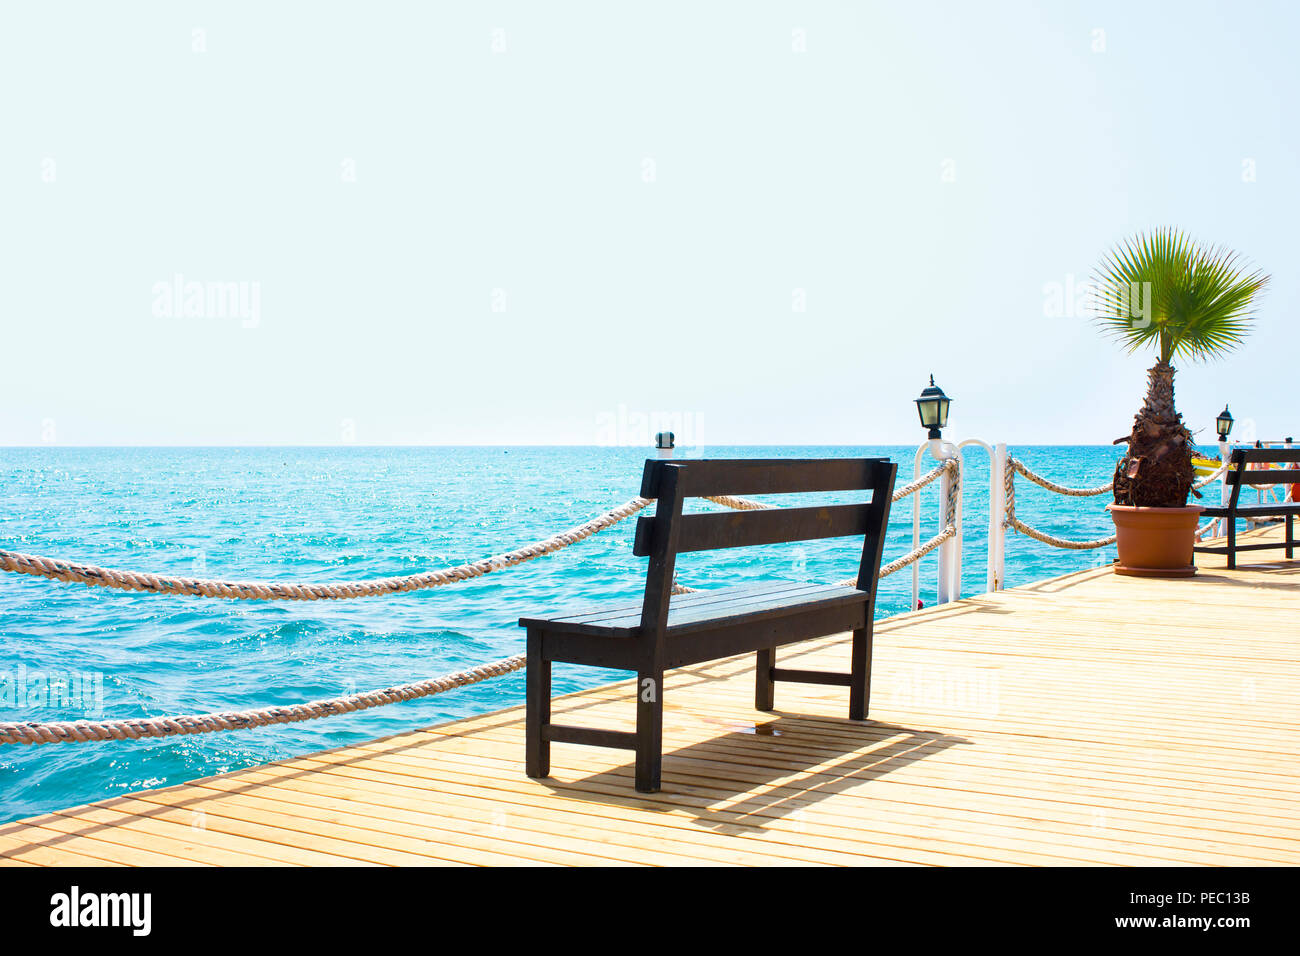 Enjoyable Wooden Bench On The Pier By Sea With A Boat Stock Photo Evergreenethics Interior Chair Design Evergreenethicsorg